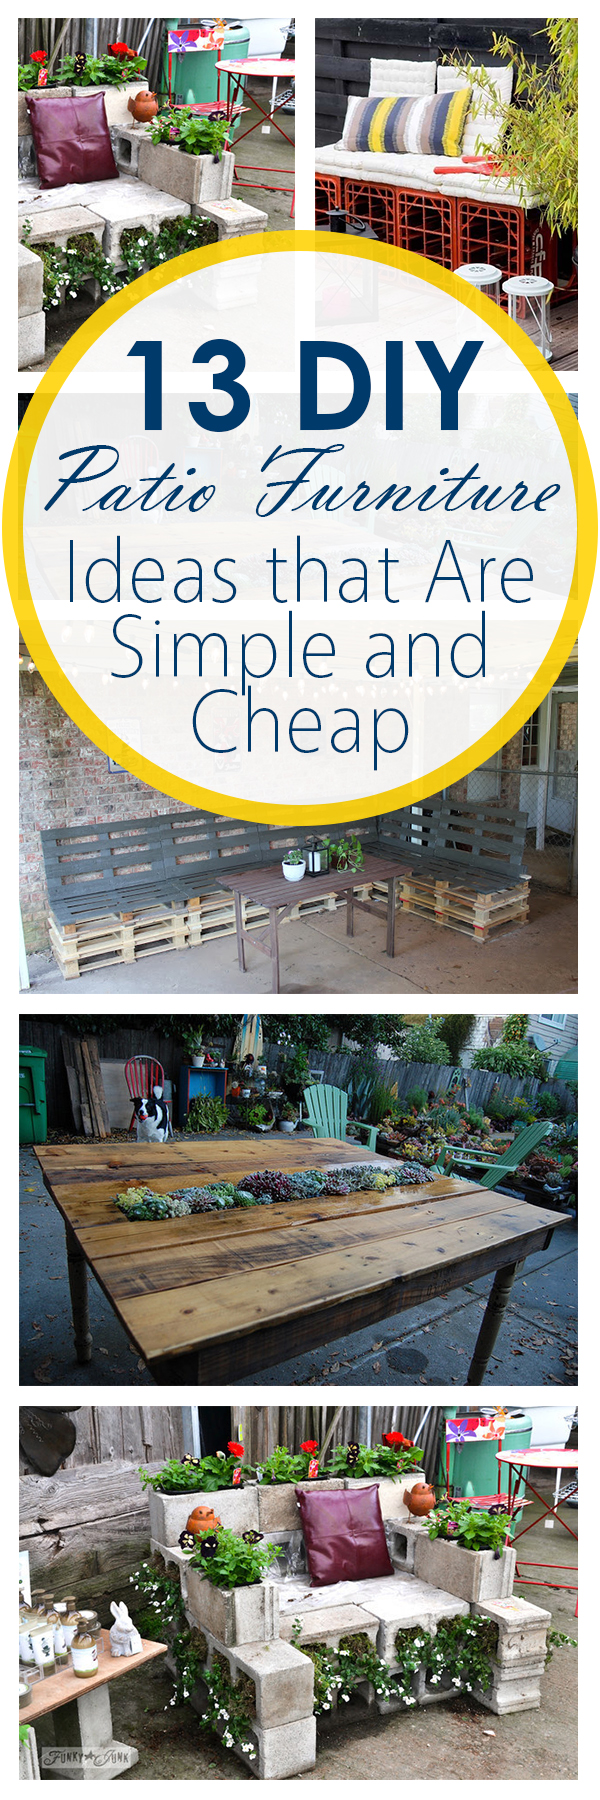 13 DIY Patio Furniture Ideas that Are Simple and Cheap| Patio Furniture, DIY Patio Furniture, Patio Furniture Projects, Patio Projects, Outdoor Living, Outdoor Entertainment. #outdoorliving #outdoorentertainment #patiofurniture #diypatiofurniture #patiodecoration